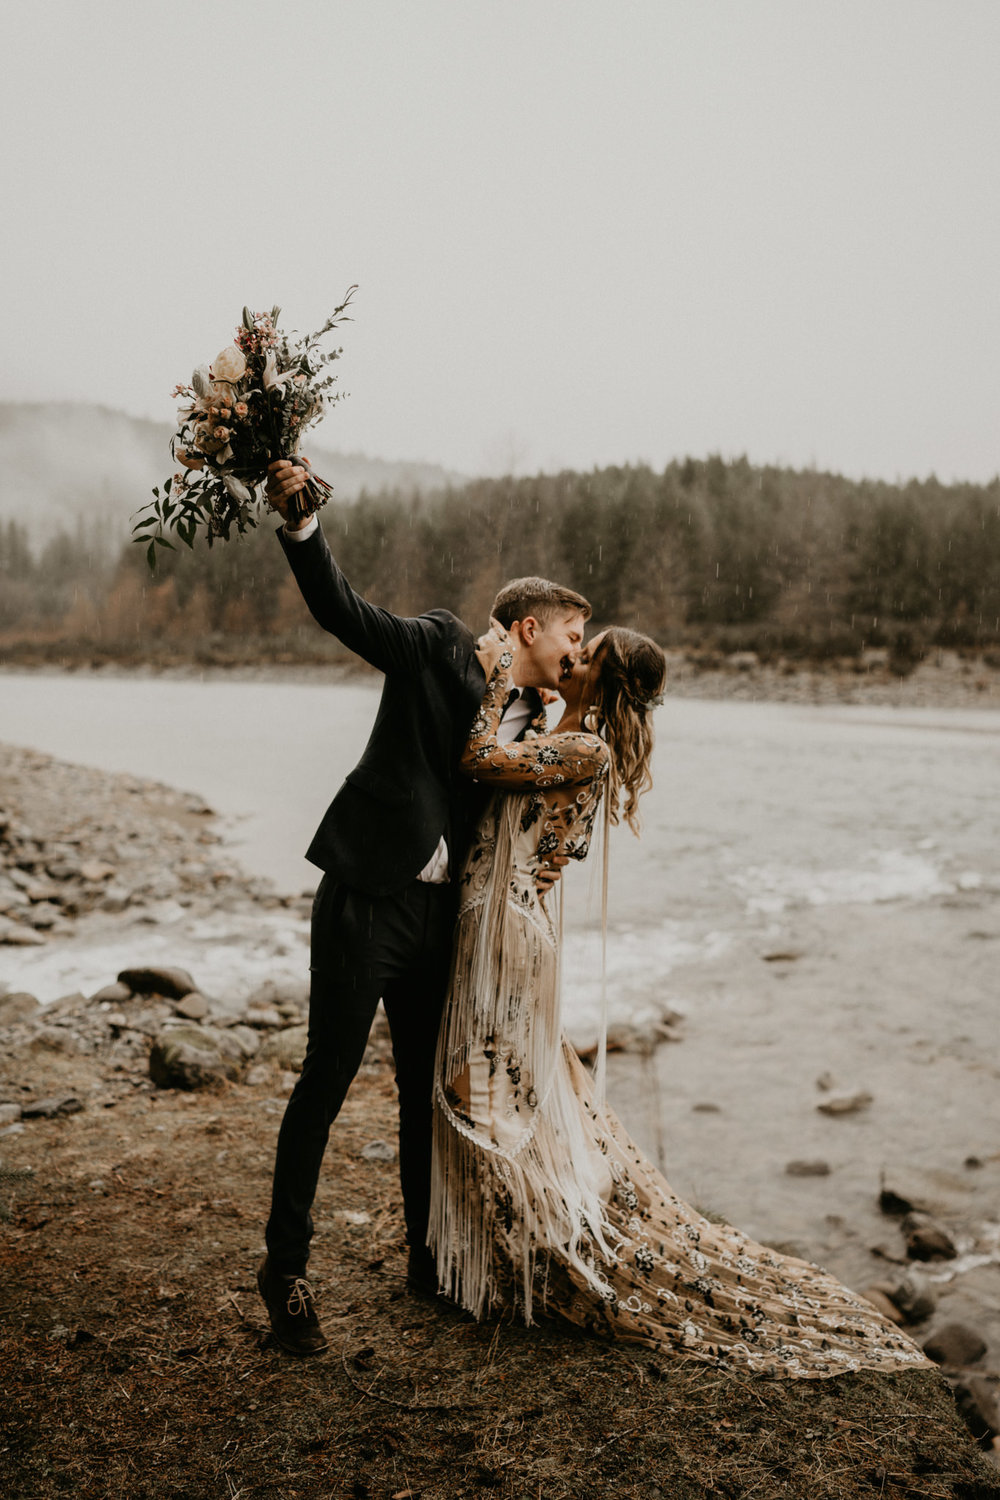 Newly weds kiss in a rainy PNW elopement with rue de seine bridal gown